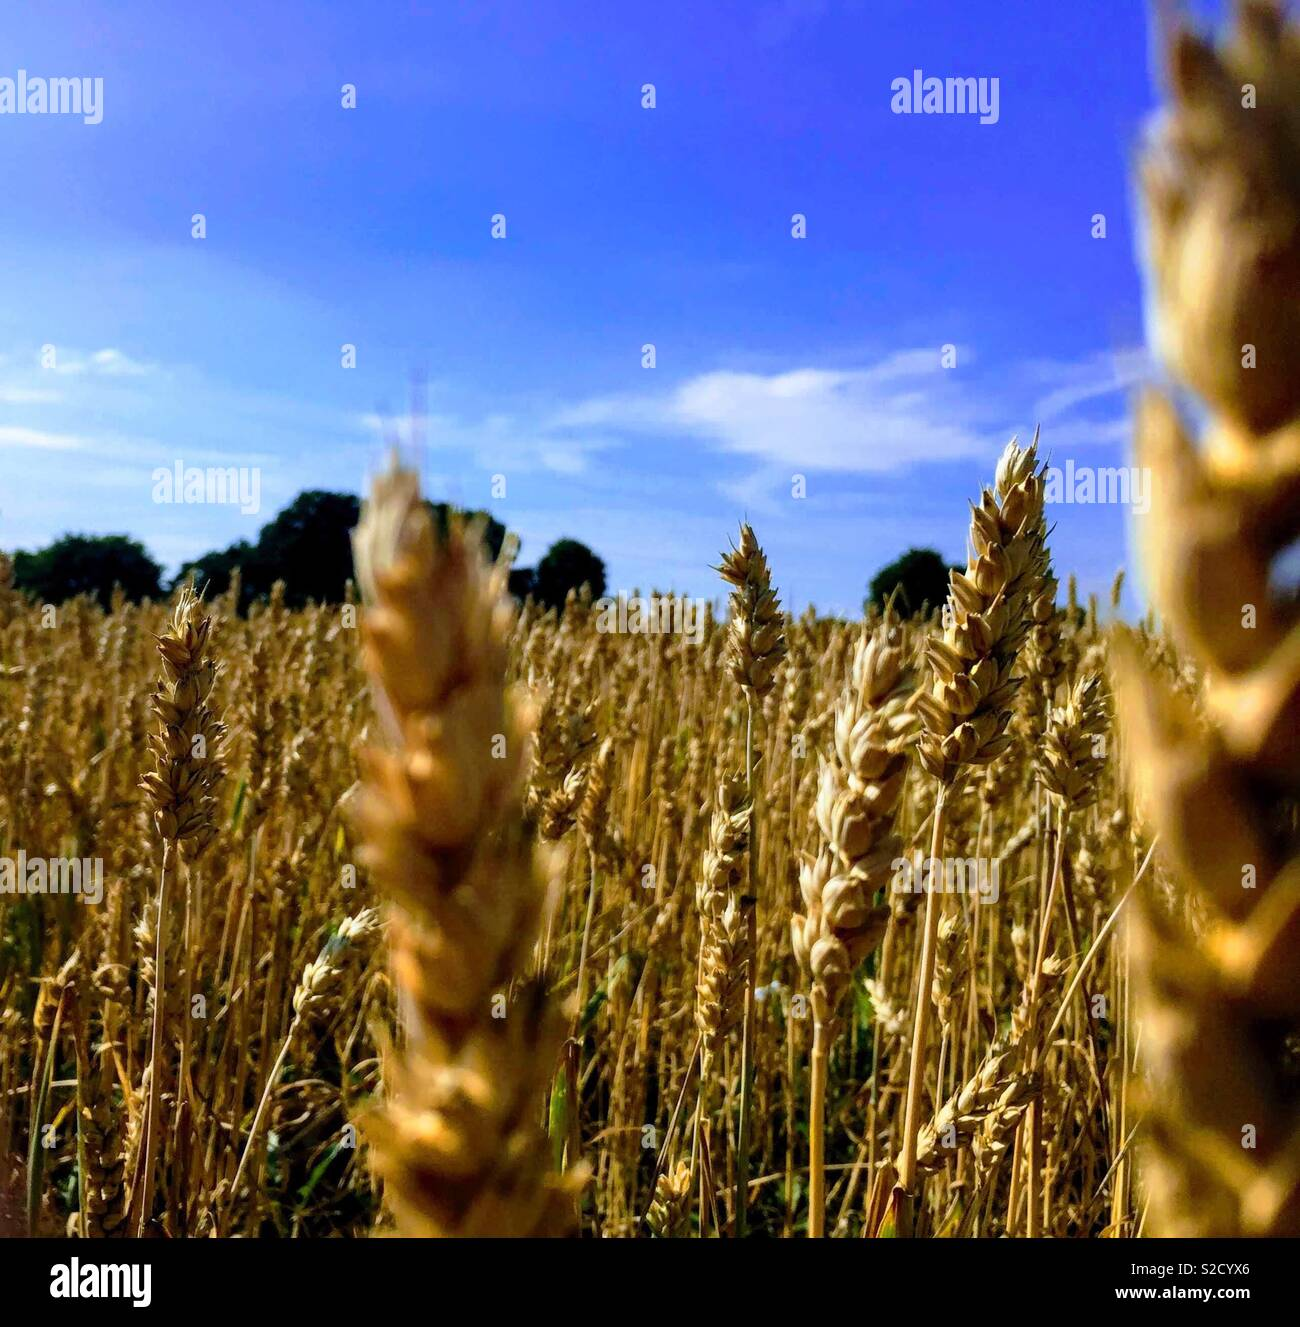 Corn field in middle of a hot summer 2018 - Stock Image